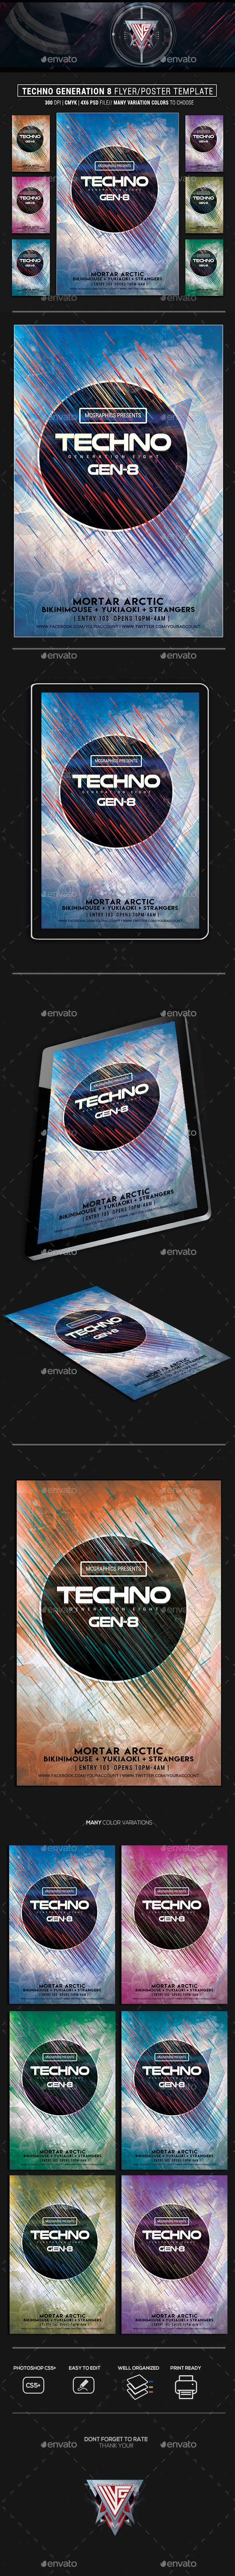 Techno Generation 8 Flyer/Poster Template - Flyers Print Templates